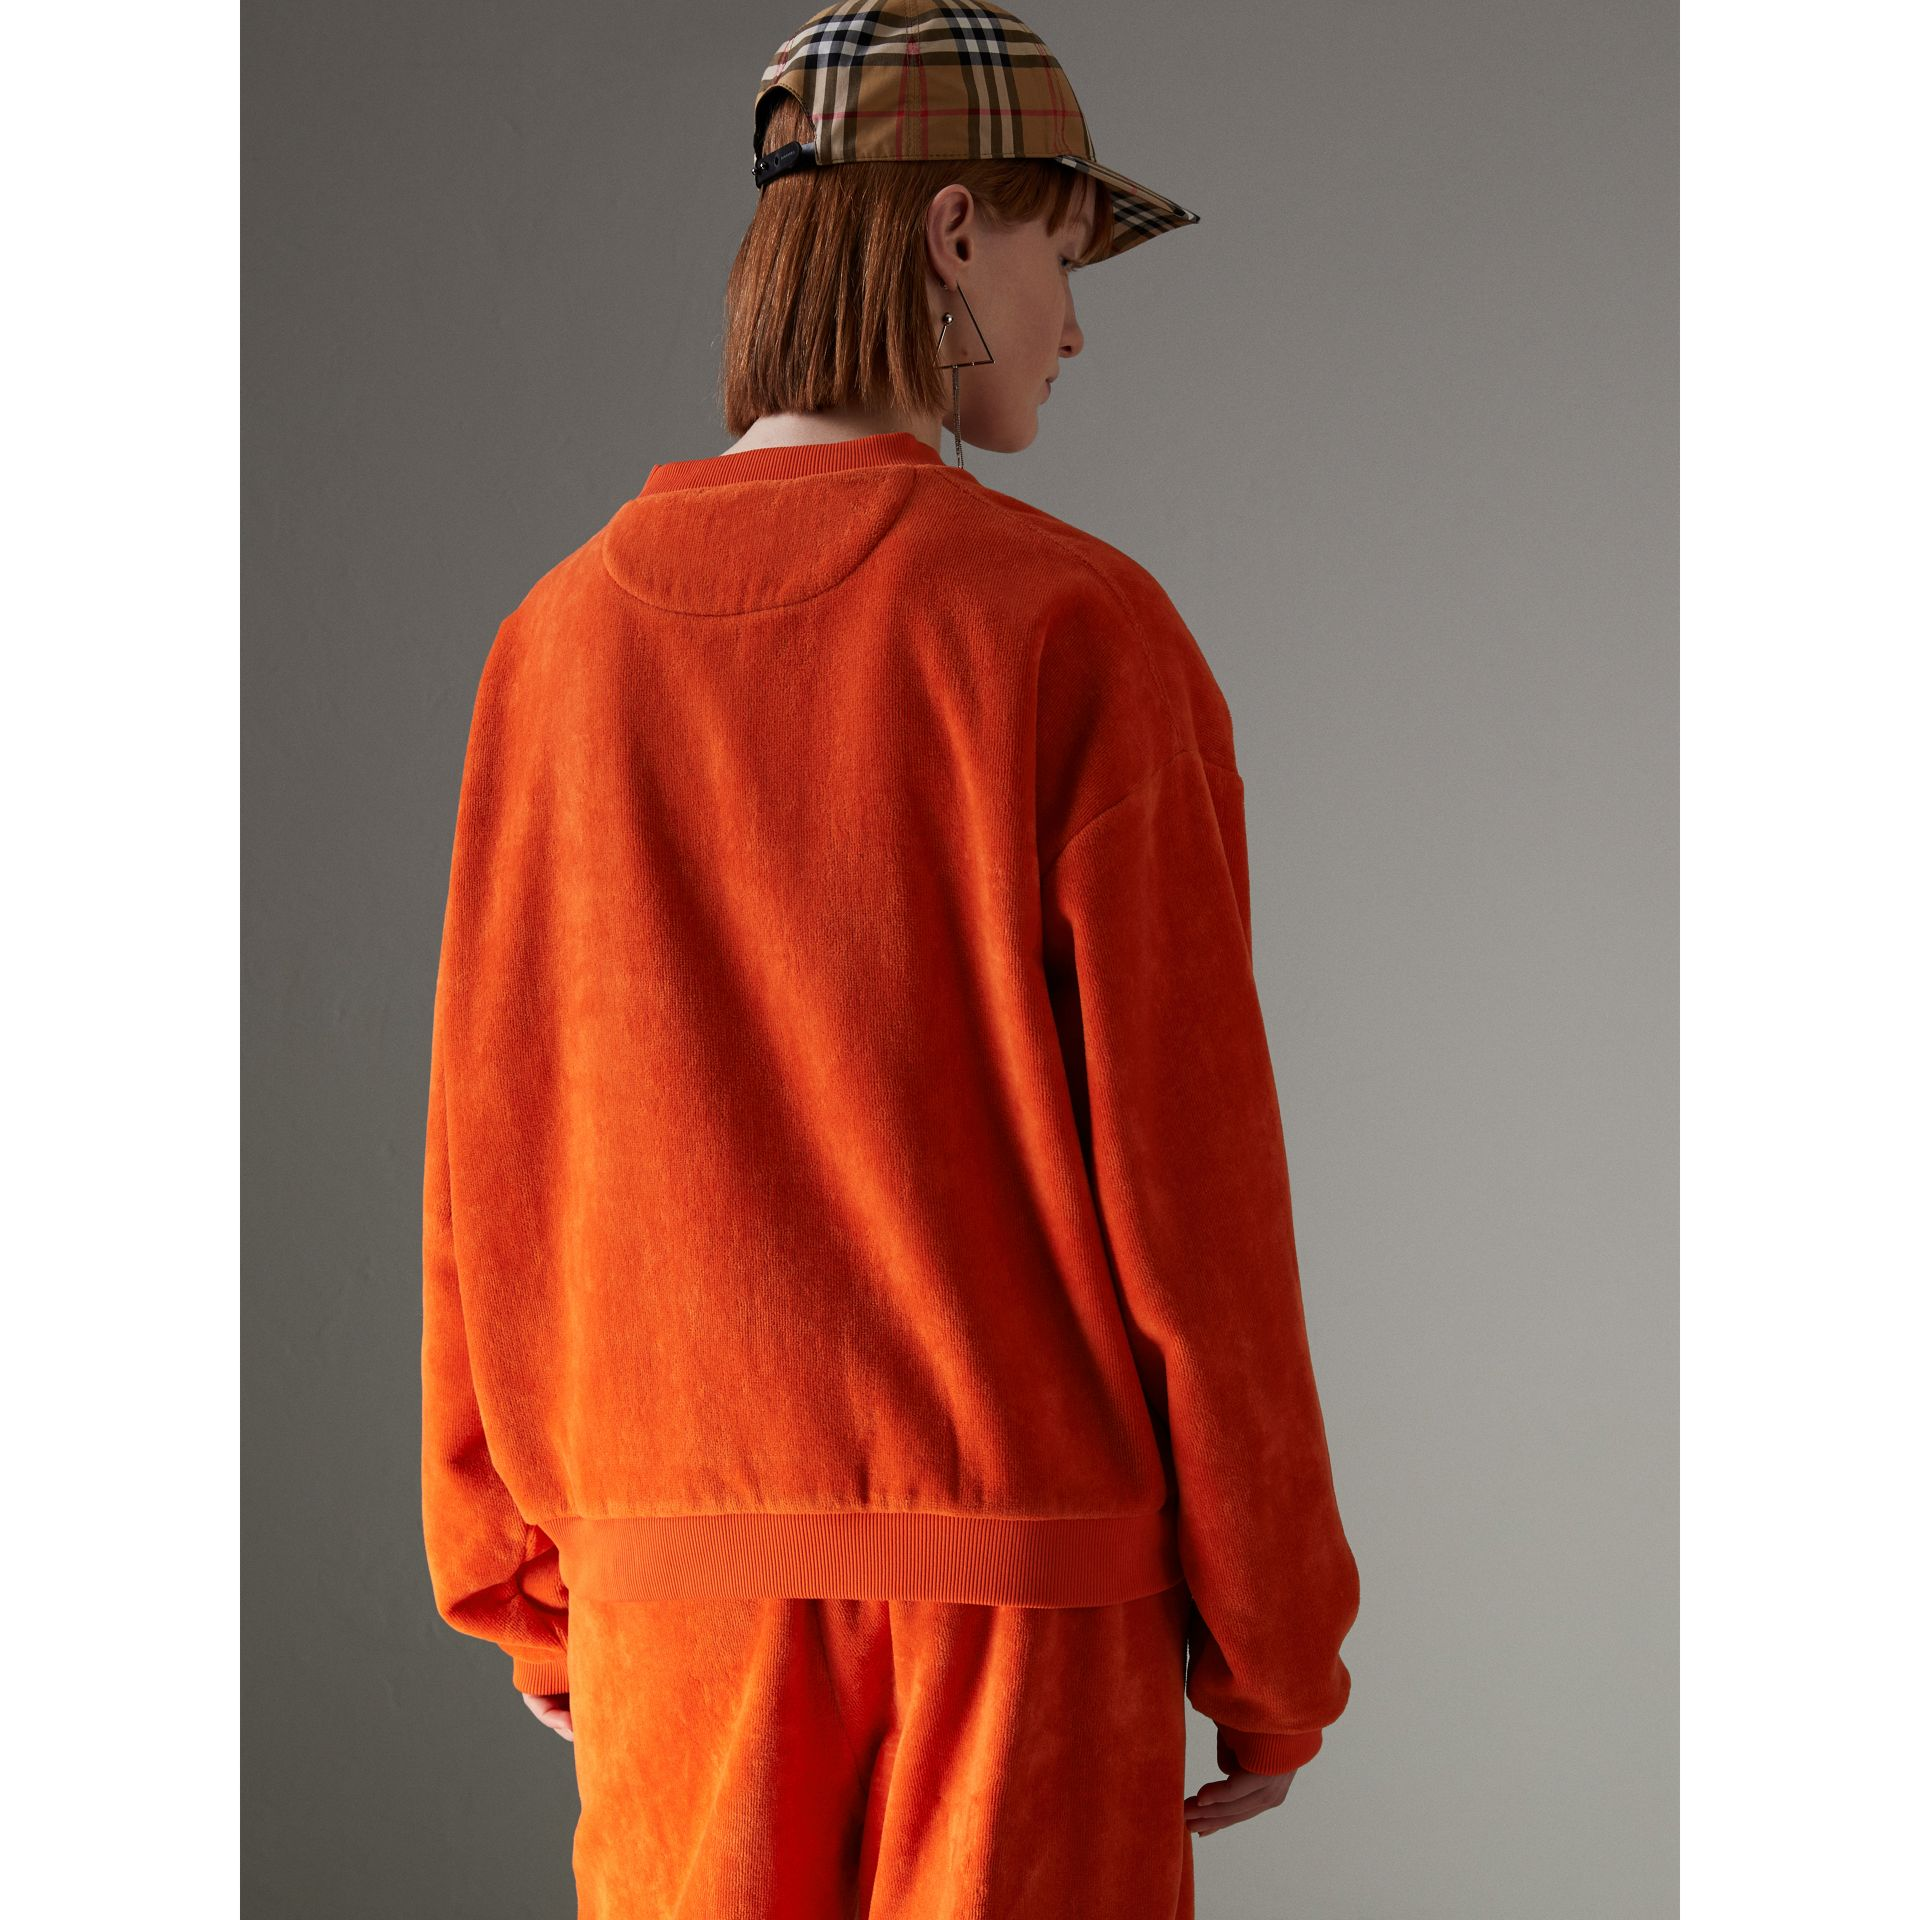 Archive Logo Towelling Sweatshirt in Tangerine - Women | Burberry - gallery image 2